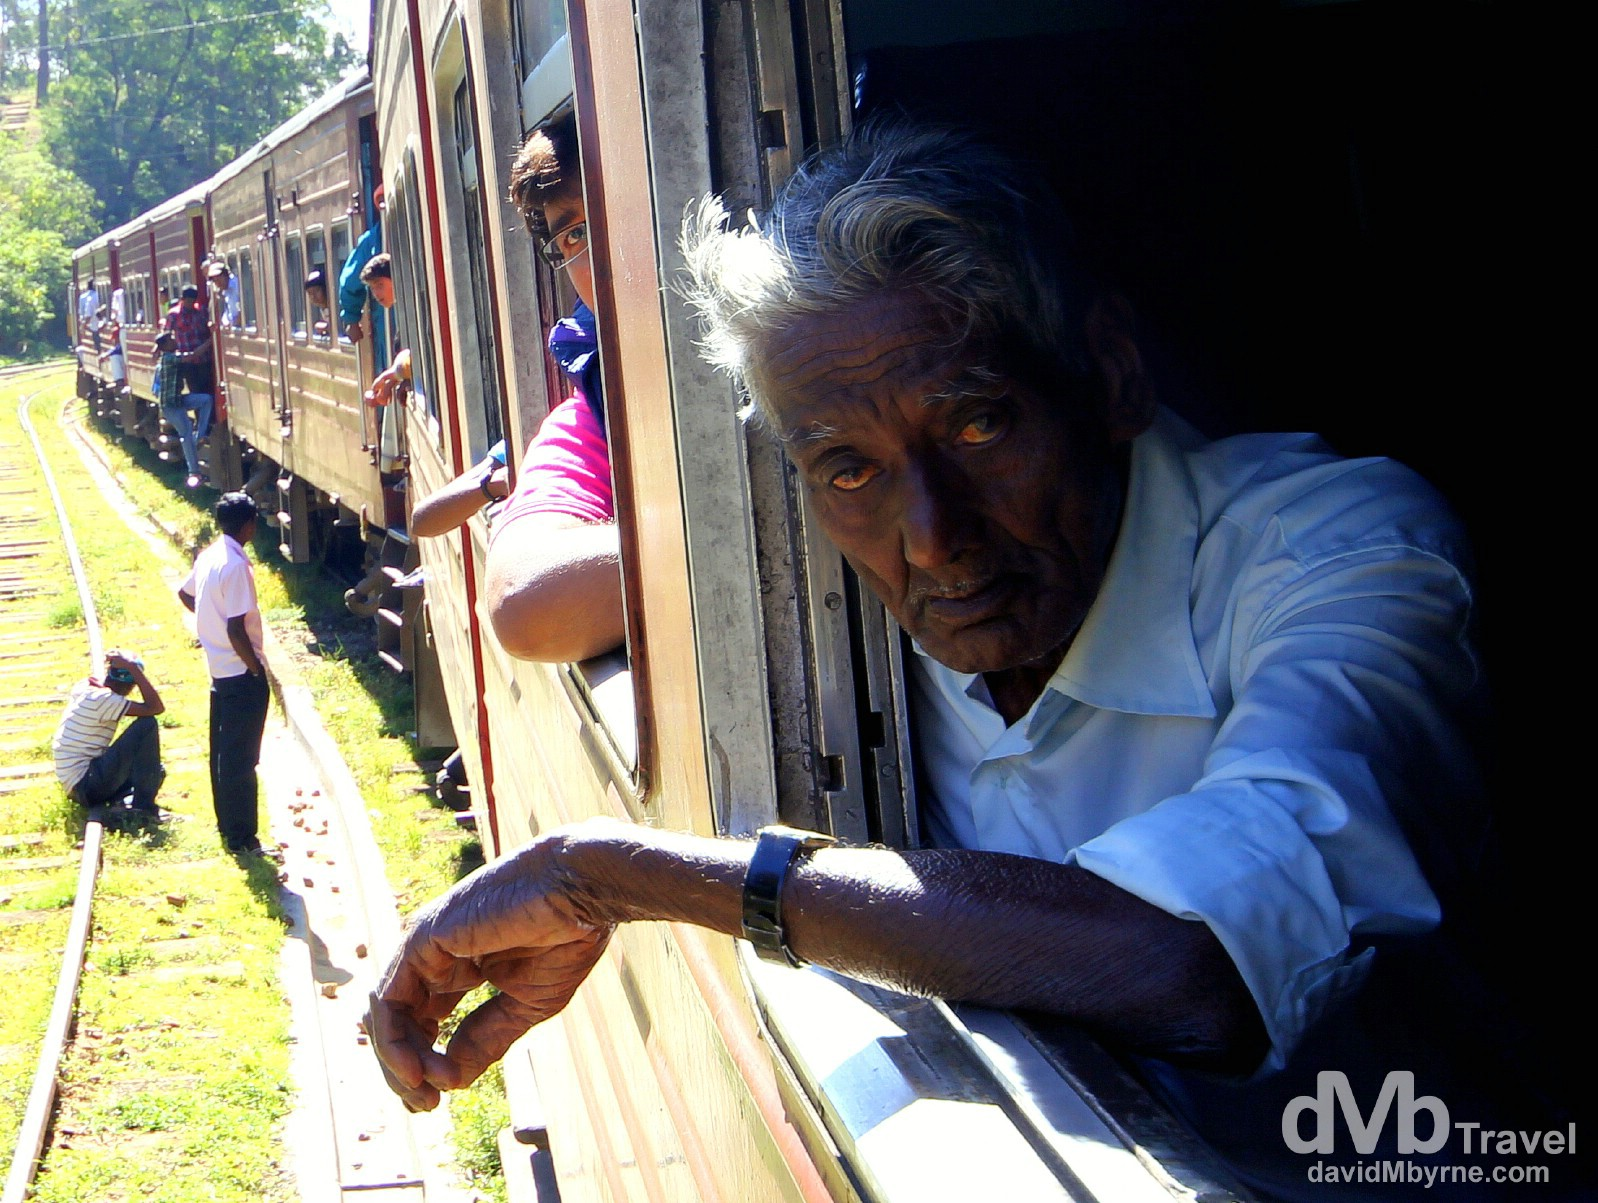 Waiting out a delay on the Badulla to Colombo train in central Sri Lanka. September 5th 2012.